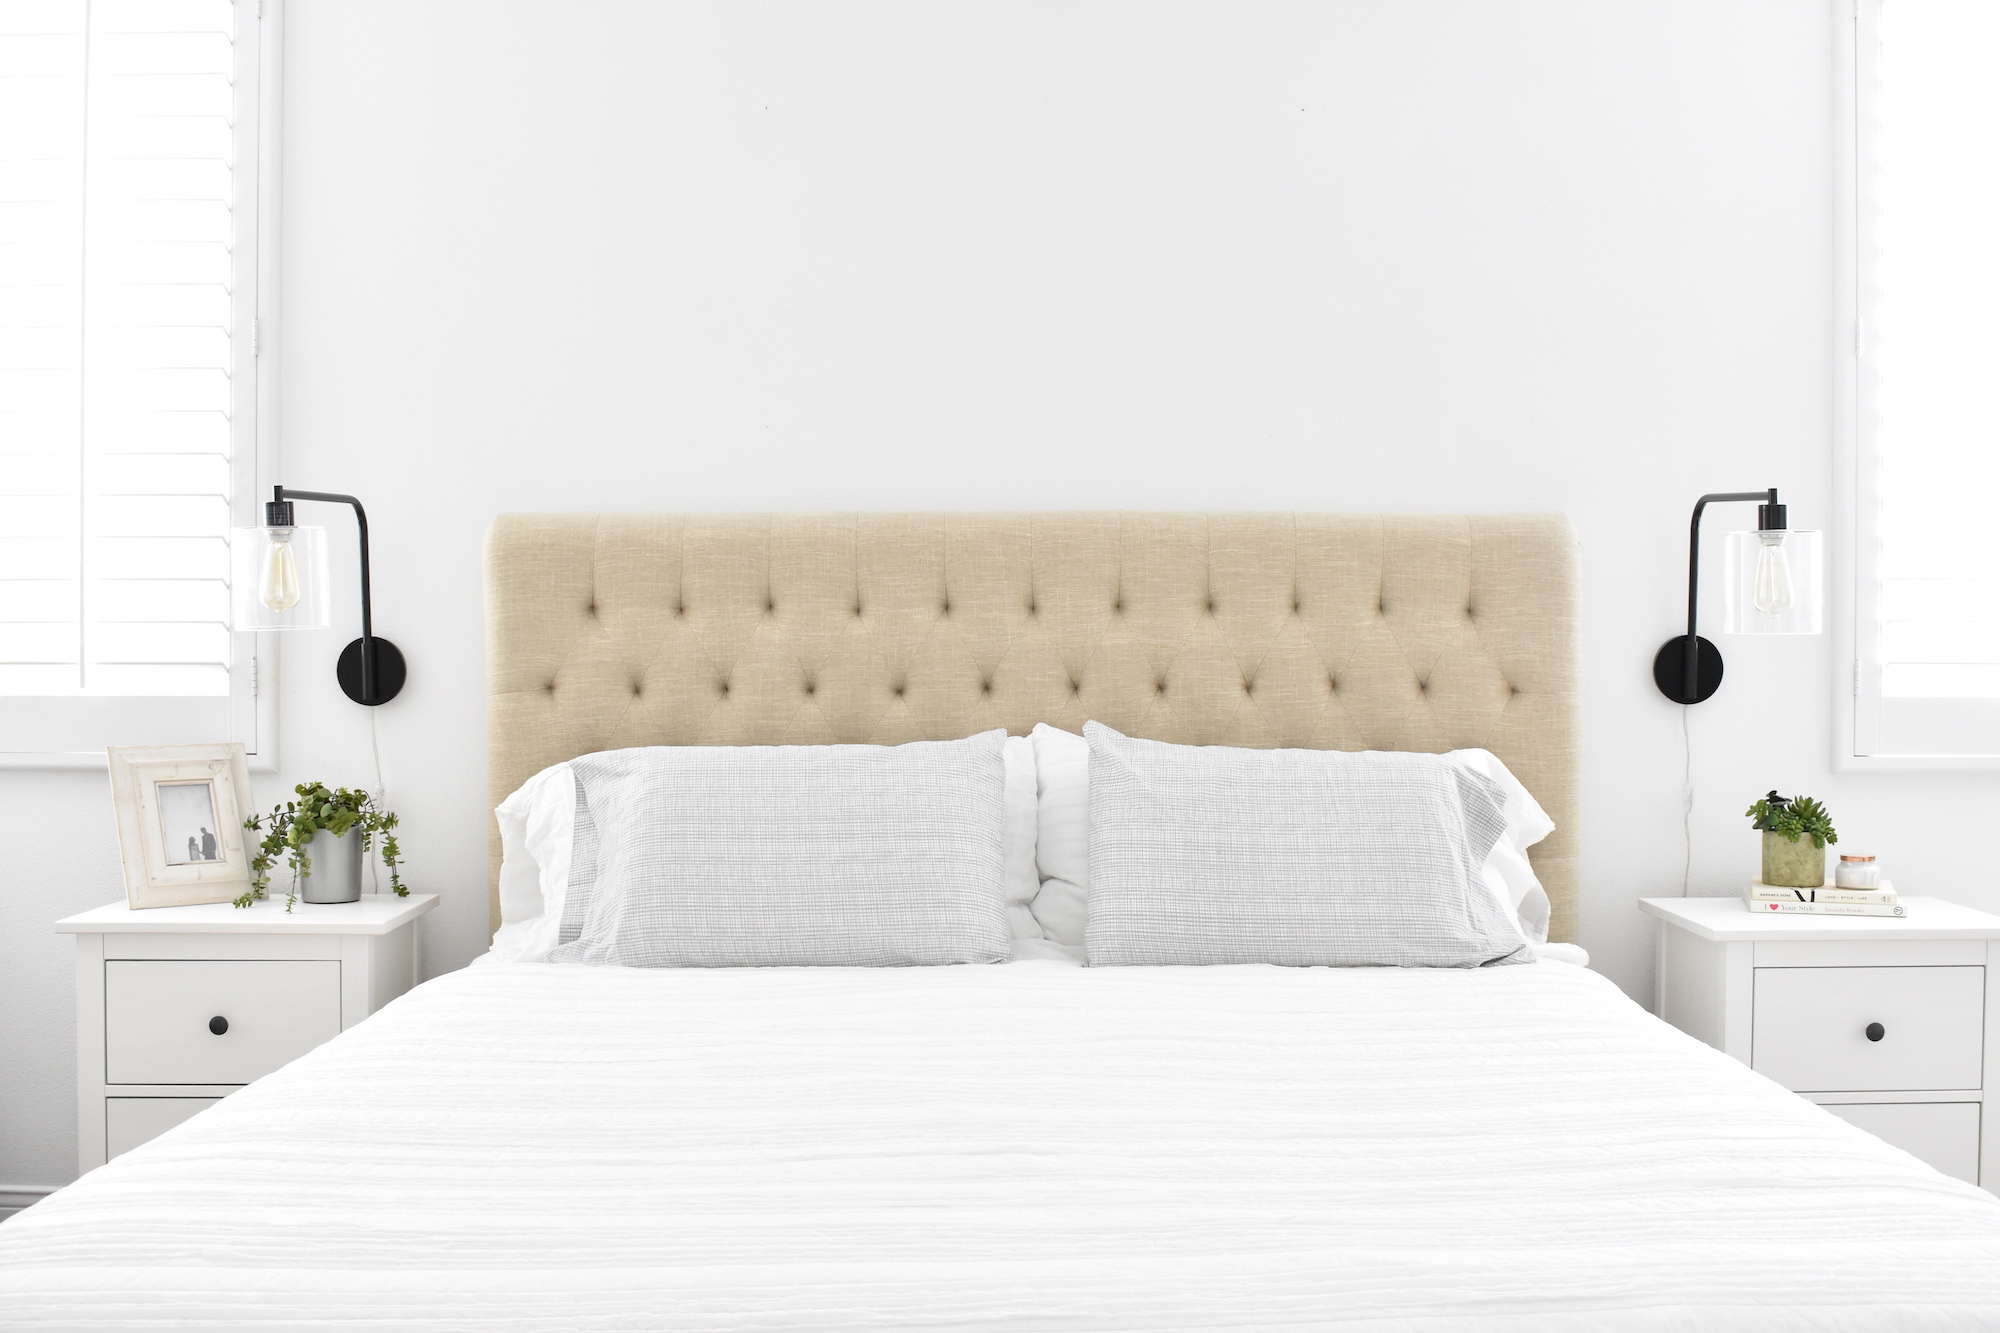 Style At Home Our California Casual Bedroom Natalie Borton Blog